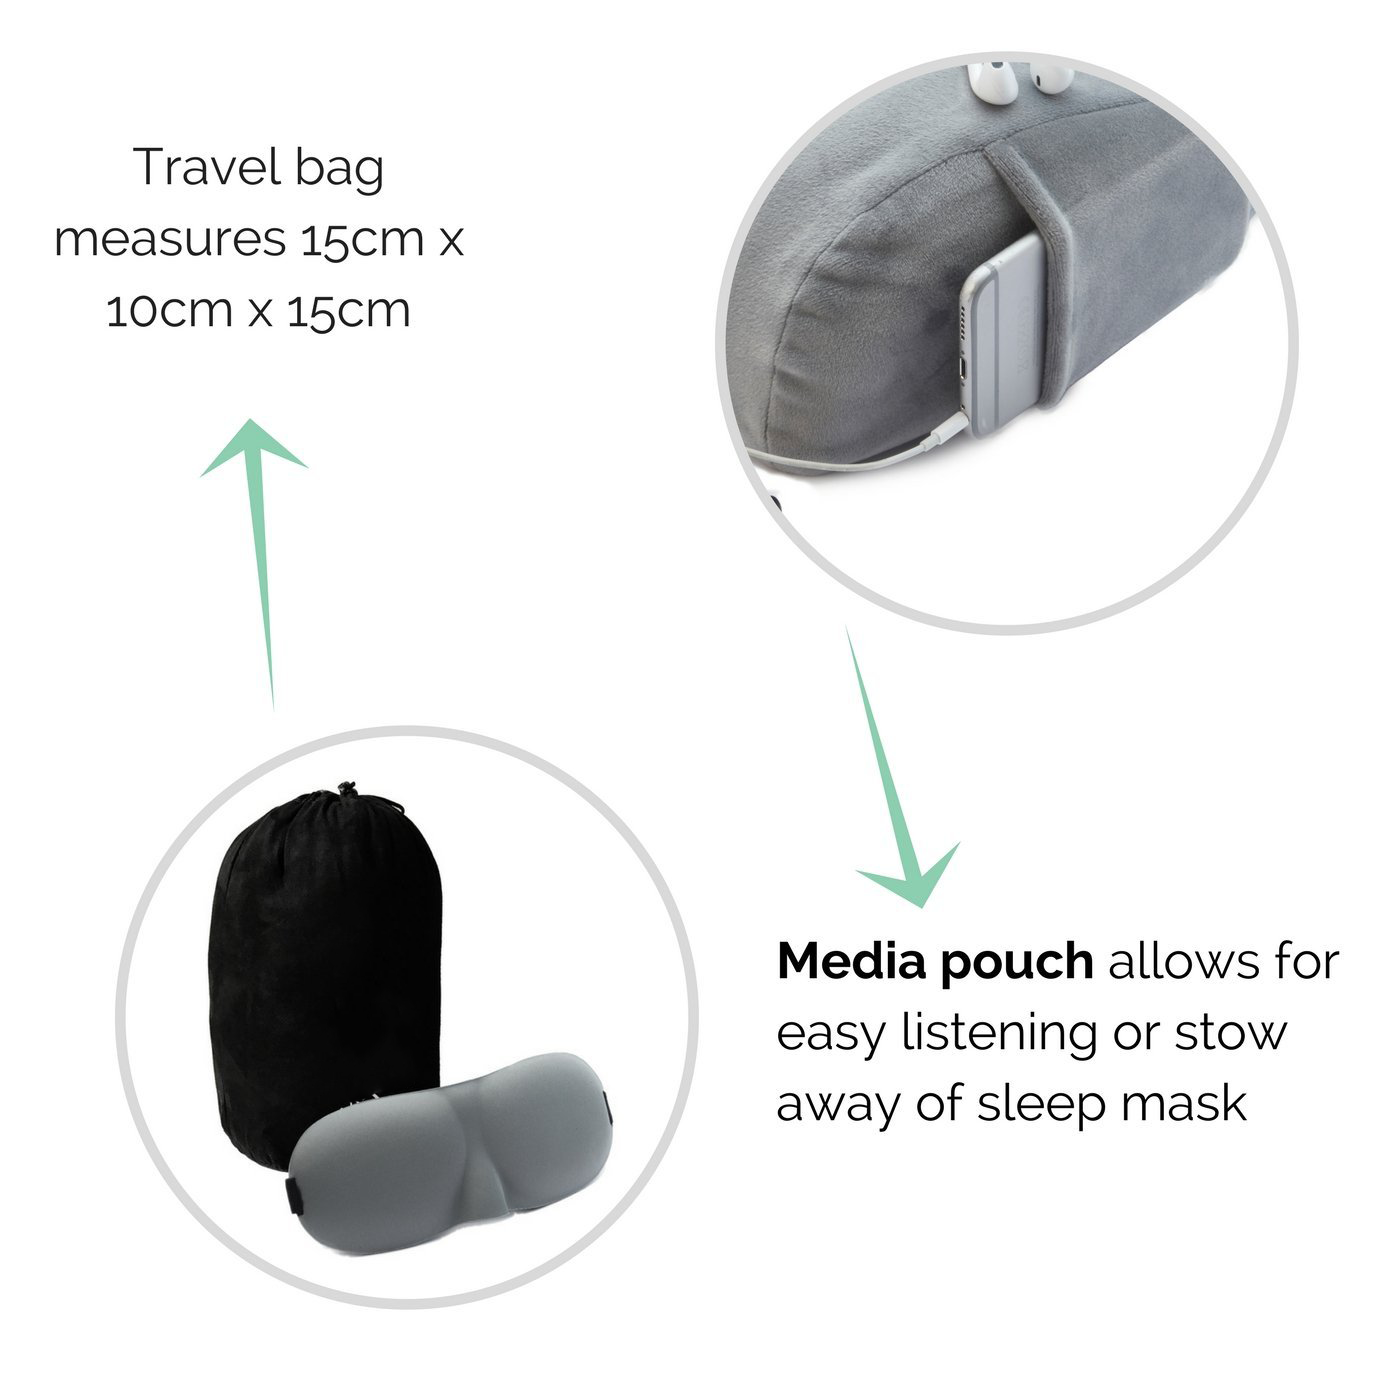 Compact 360 travel pillow for airplane With Sleep Mask - Memory Foam For Car, Airplane travel neck pillow